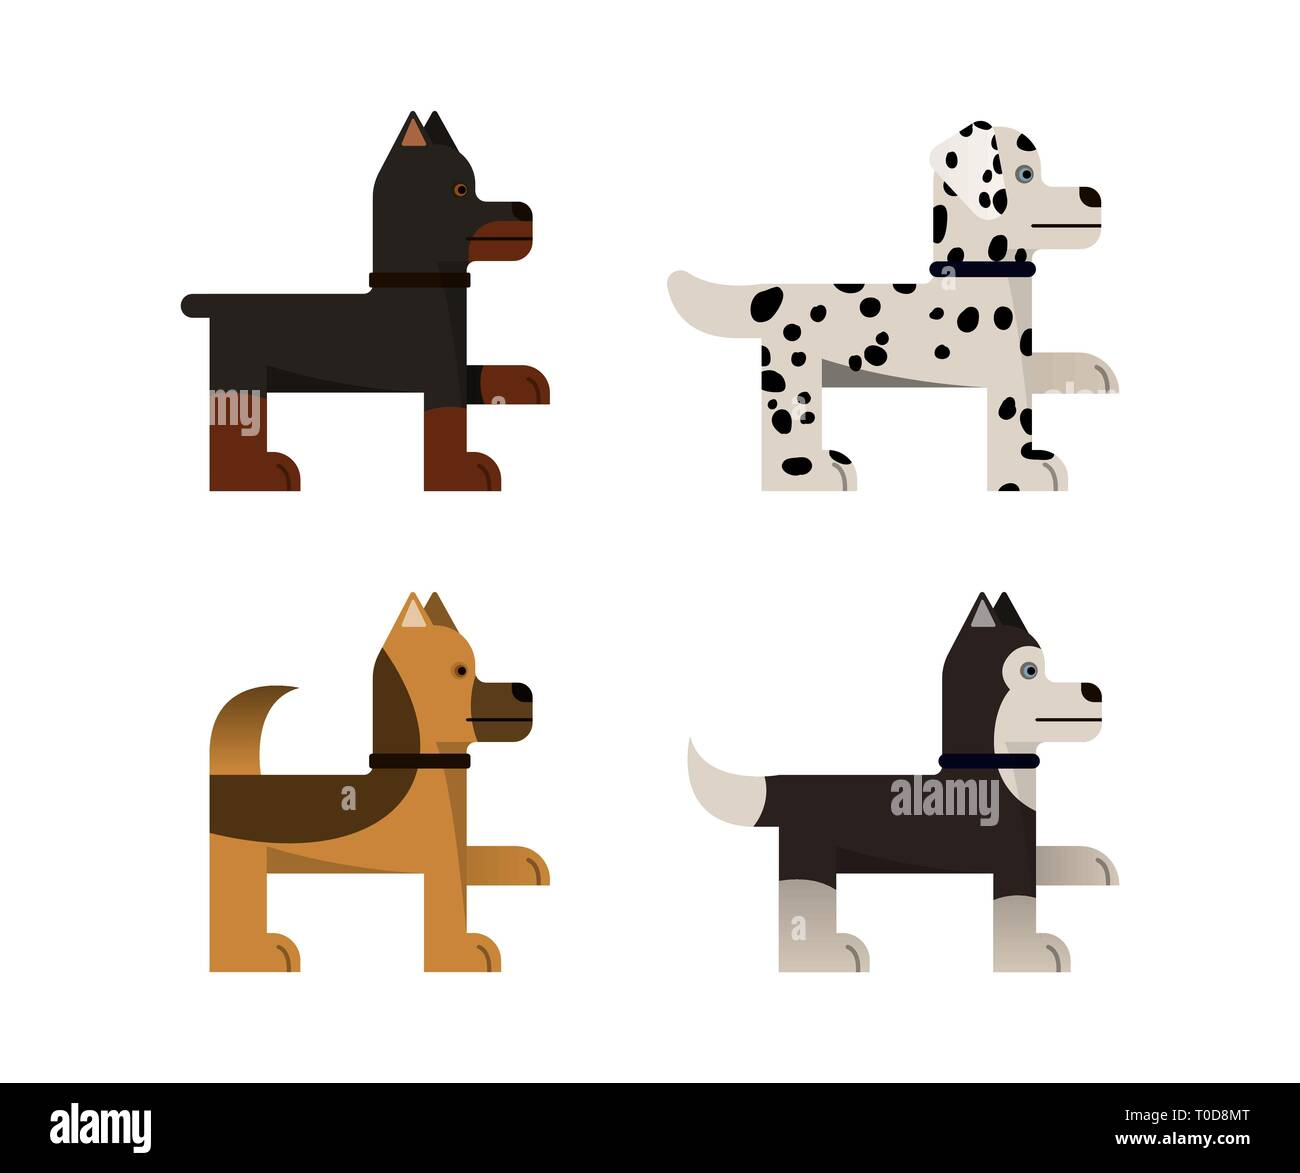 Dogs stand and gives a paw. Doberman, shepherd, husky and dalmatian. Vector illustration. Flat icons set. Stock Vector